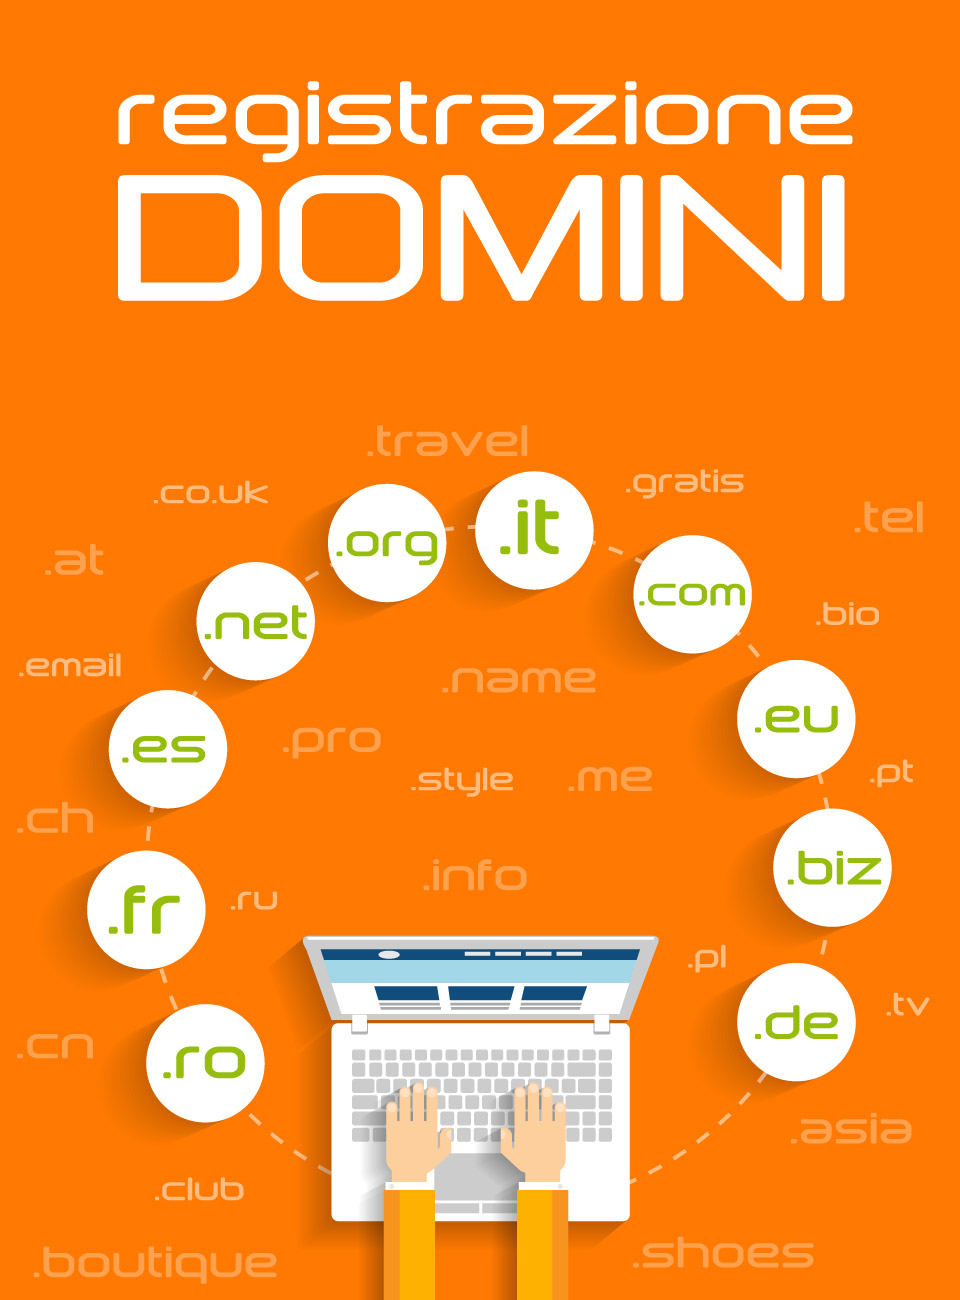 REGISTRAZIONE DOMINI INTERNET